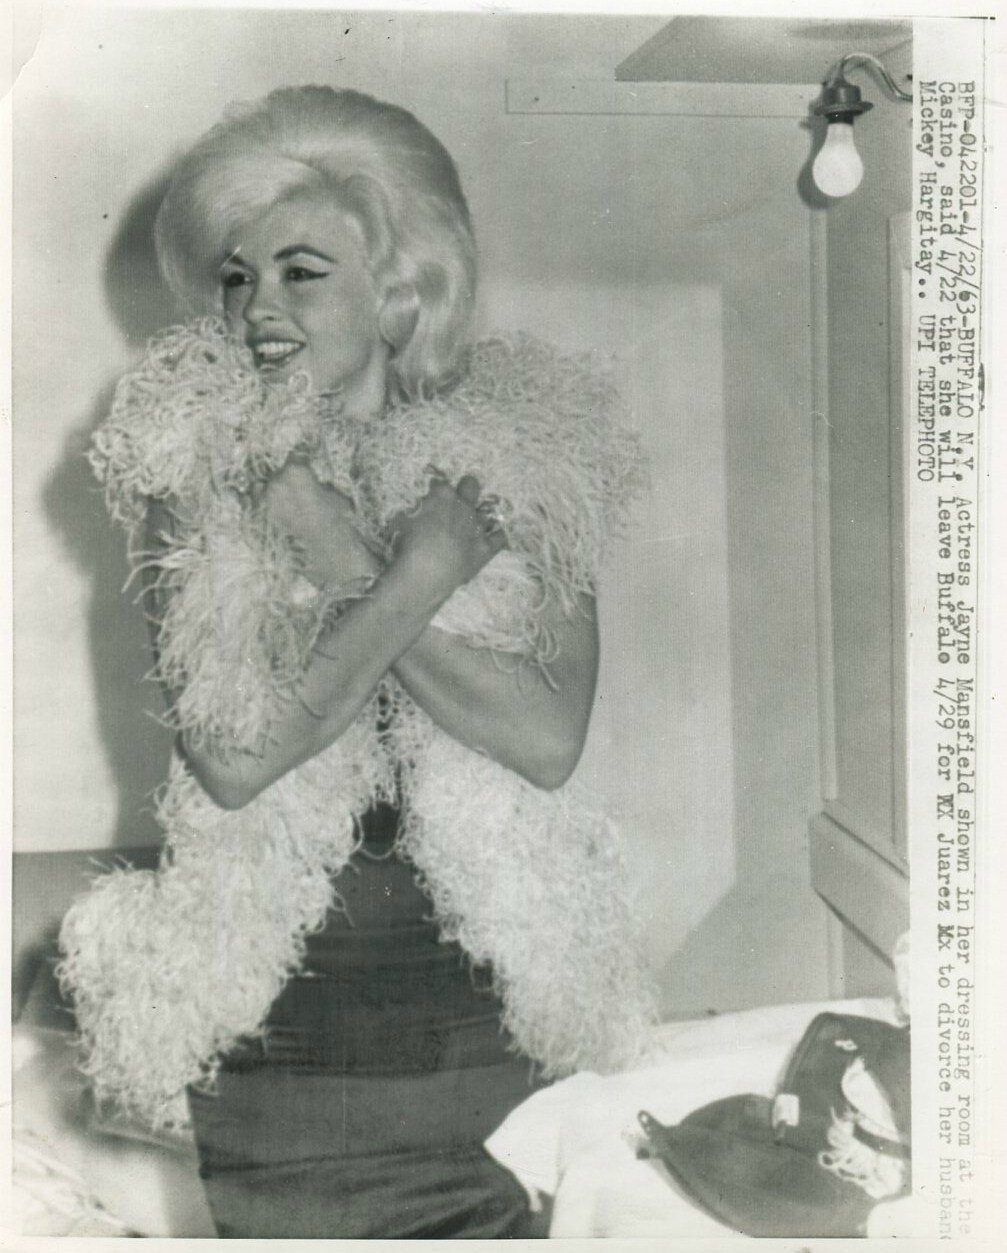 jayne-1963-04-22-buffalo-casino